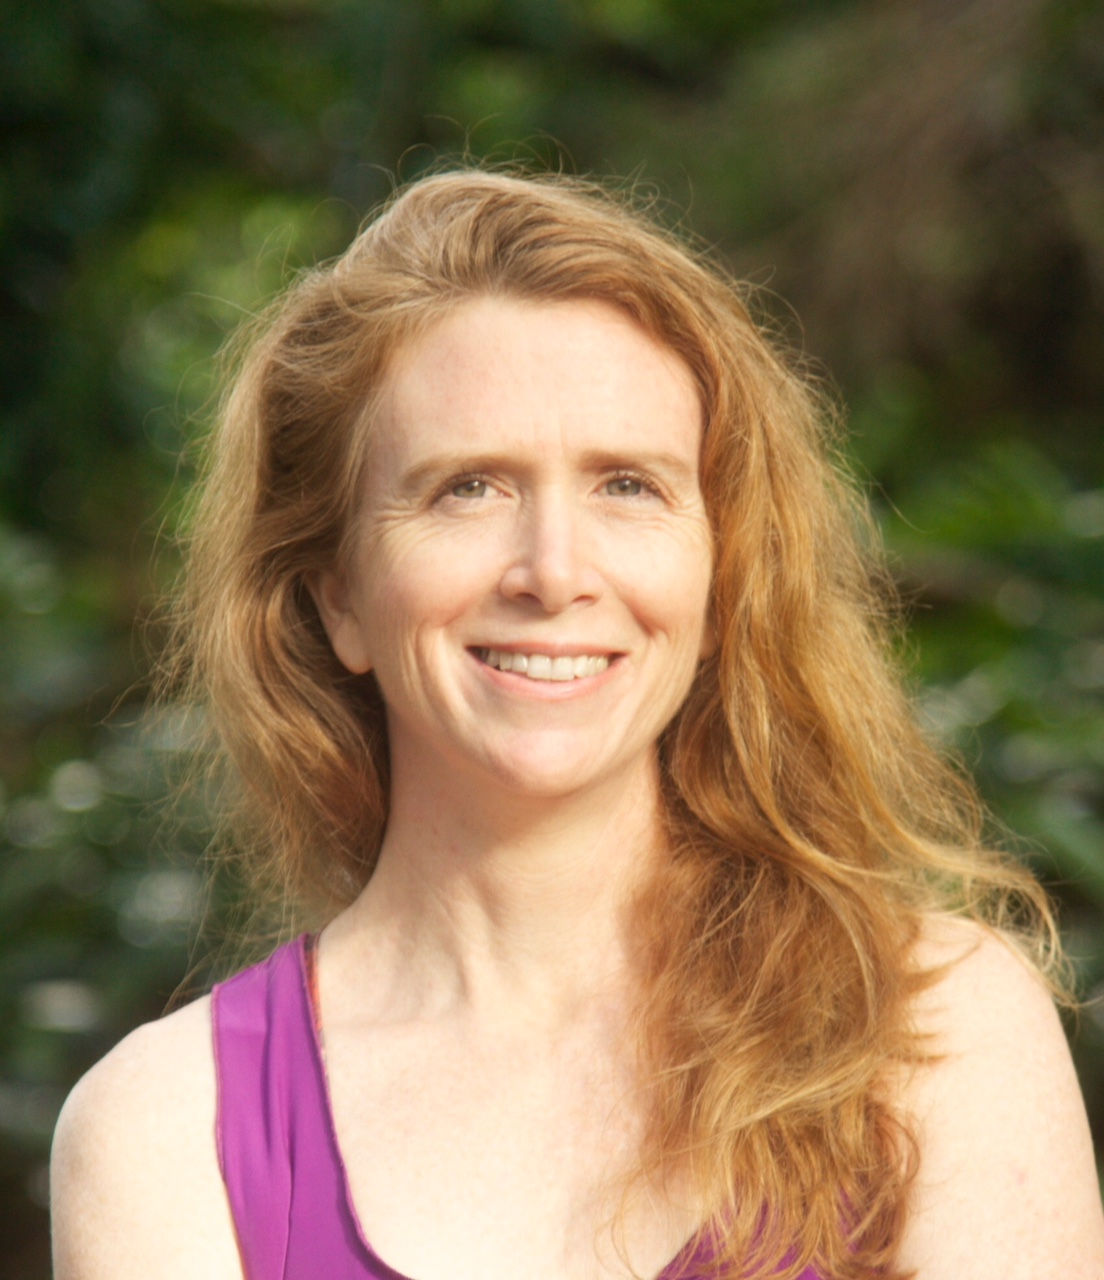 Liz Heffernan - Liz draws from over two decades of personal yoga practice, 22 years of teaching and extensive training in the Hatha yoga systems of Kripalu, Ashtanga and Anusara.She is known is for her ability to bridge the gap between the ancient perspectives of yoga and contemporary daily life. Her teaching weaves together philosophy, creative sequencing, clear alignment, mindful breathing and compassionate self-inquiry to form a tapestry that reflects her heartfelt commitment to this transformative path.